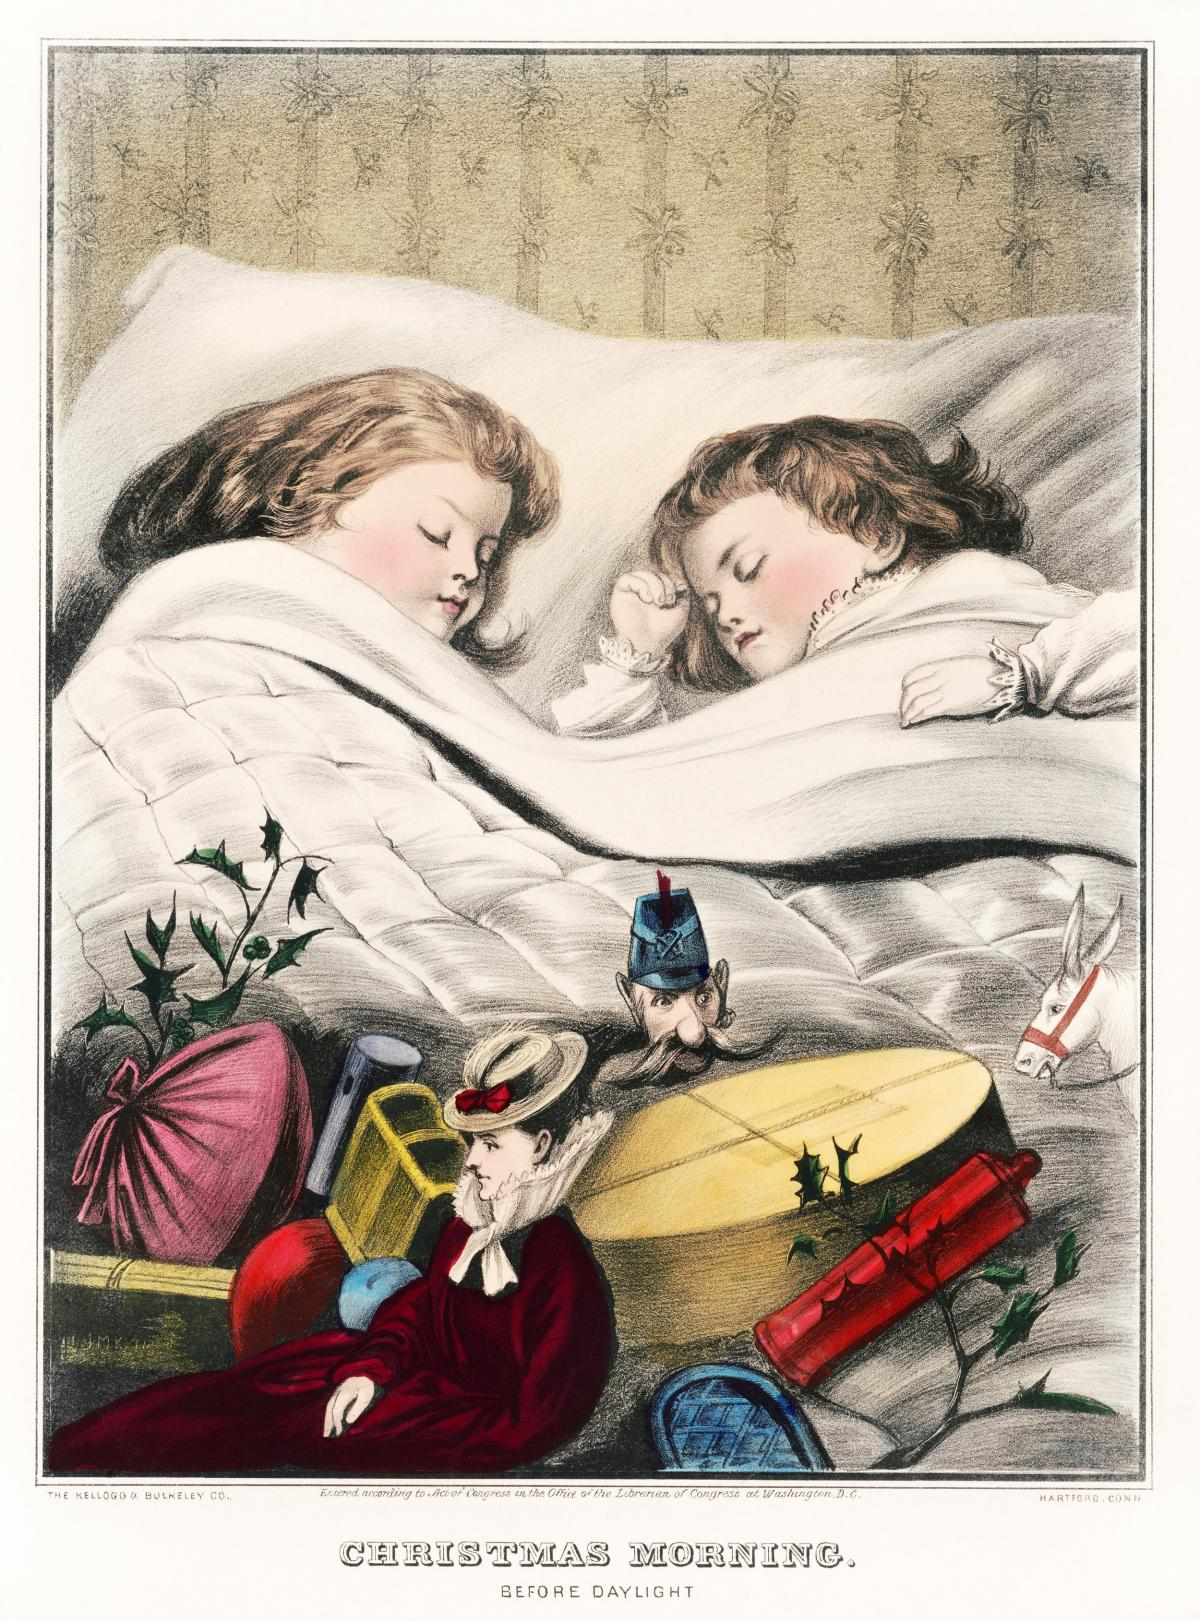 Christmas Morning–Before Daylight (1871) by The Kellogg & Bulkeley Co. Original from Library of Congress.